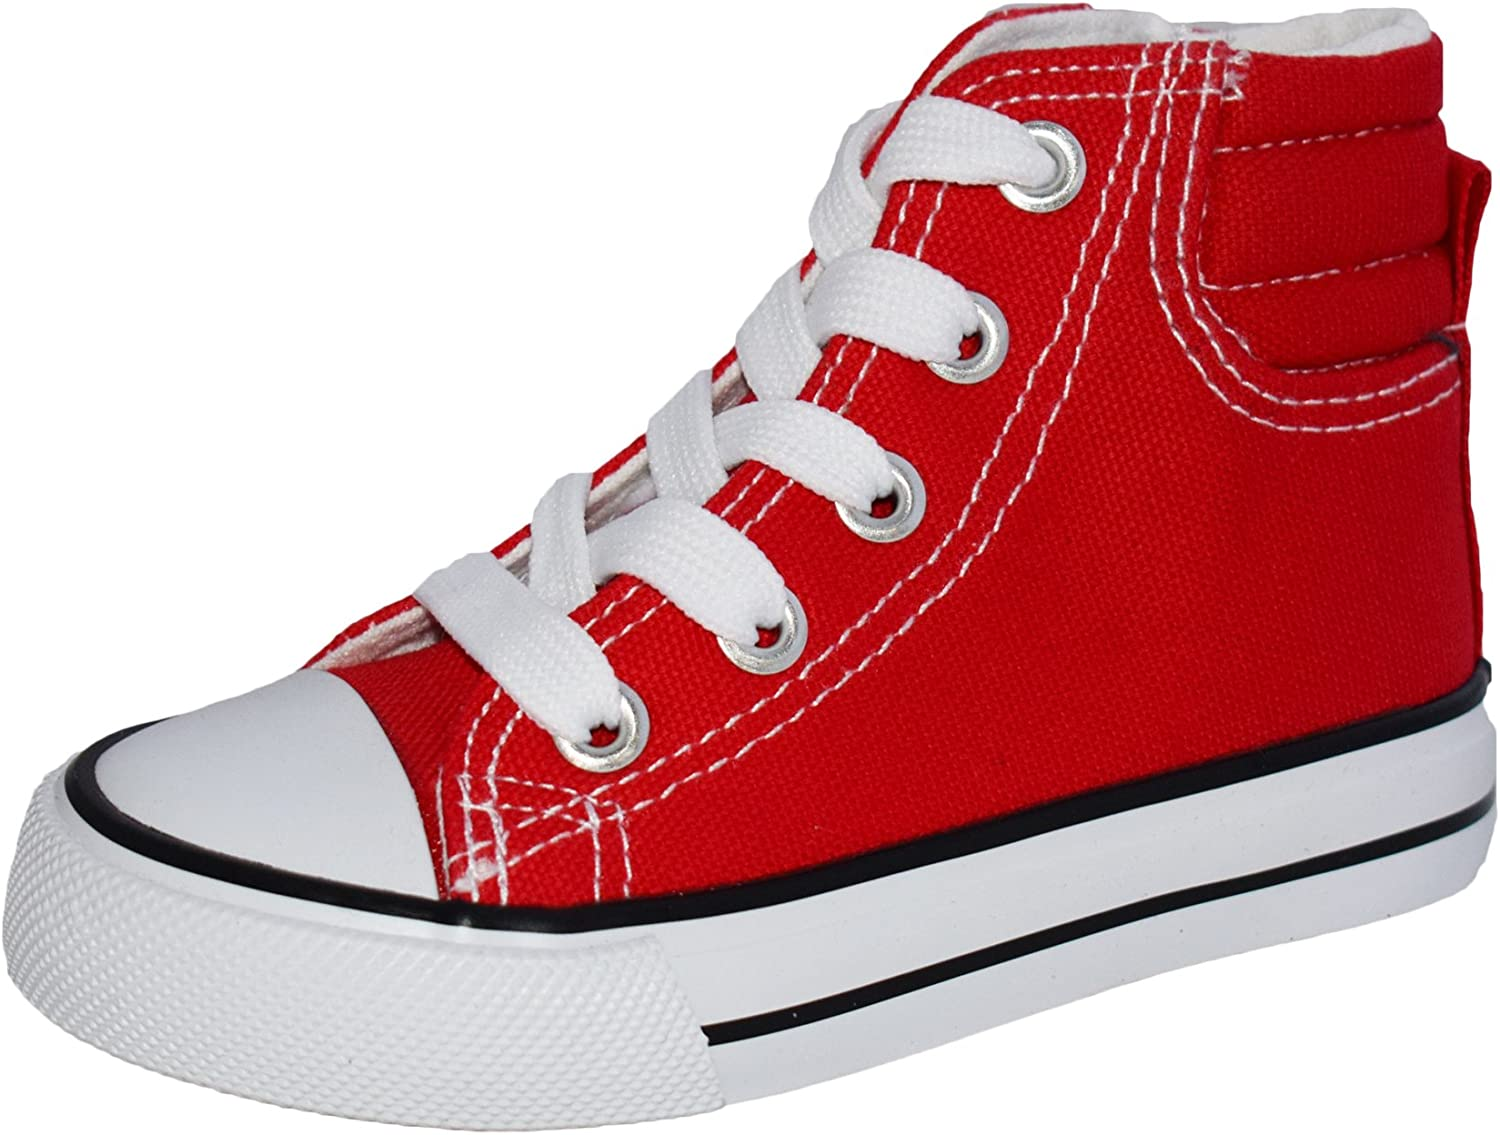 Girls Sneakers Classic Lace Up